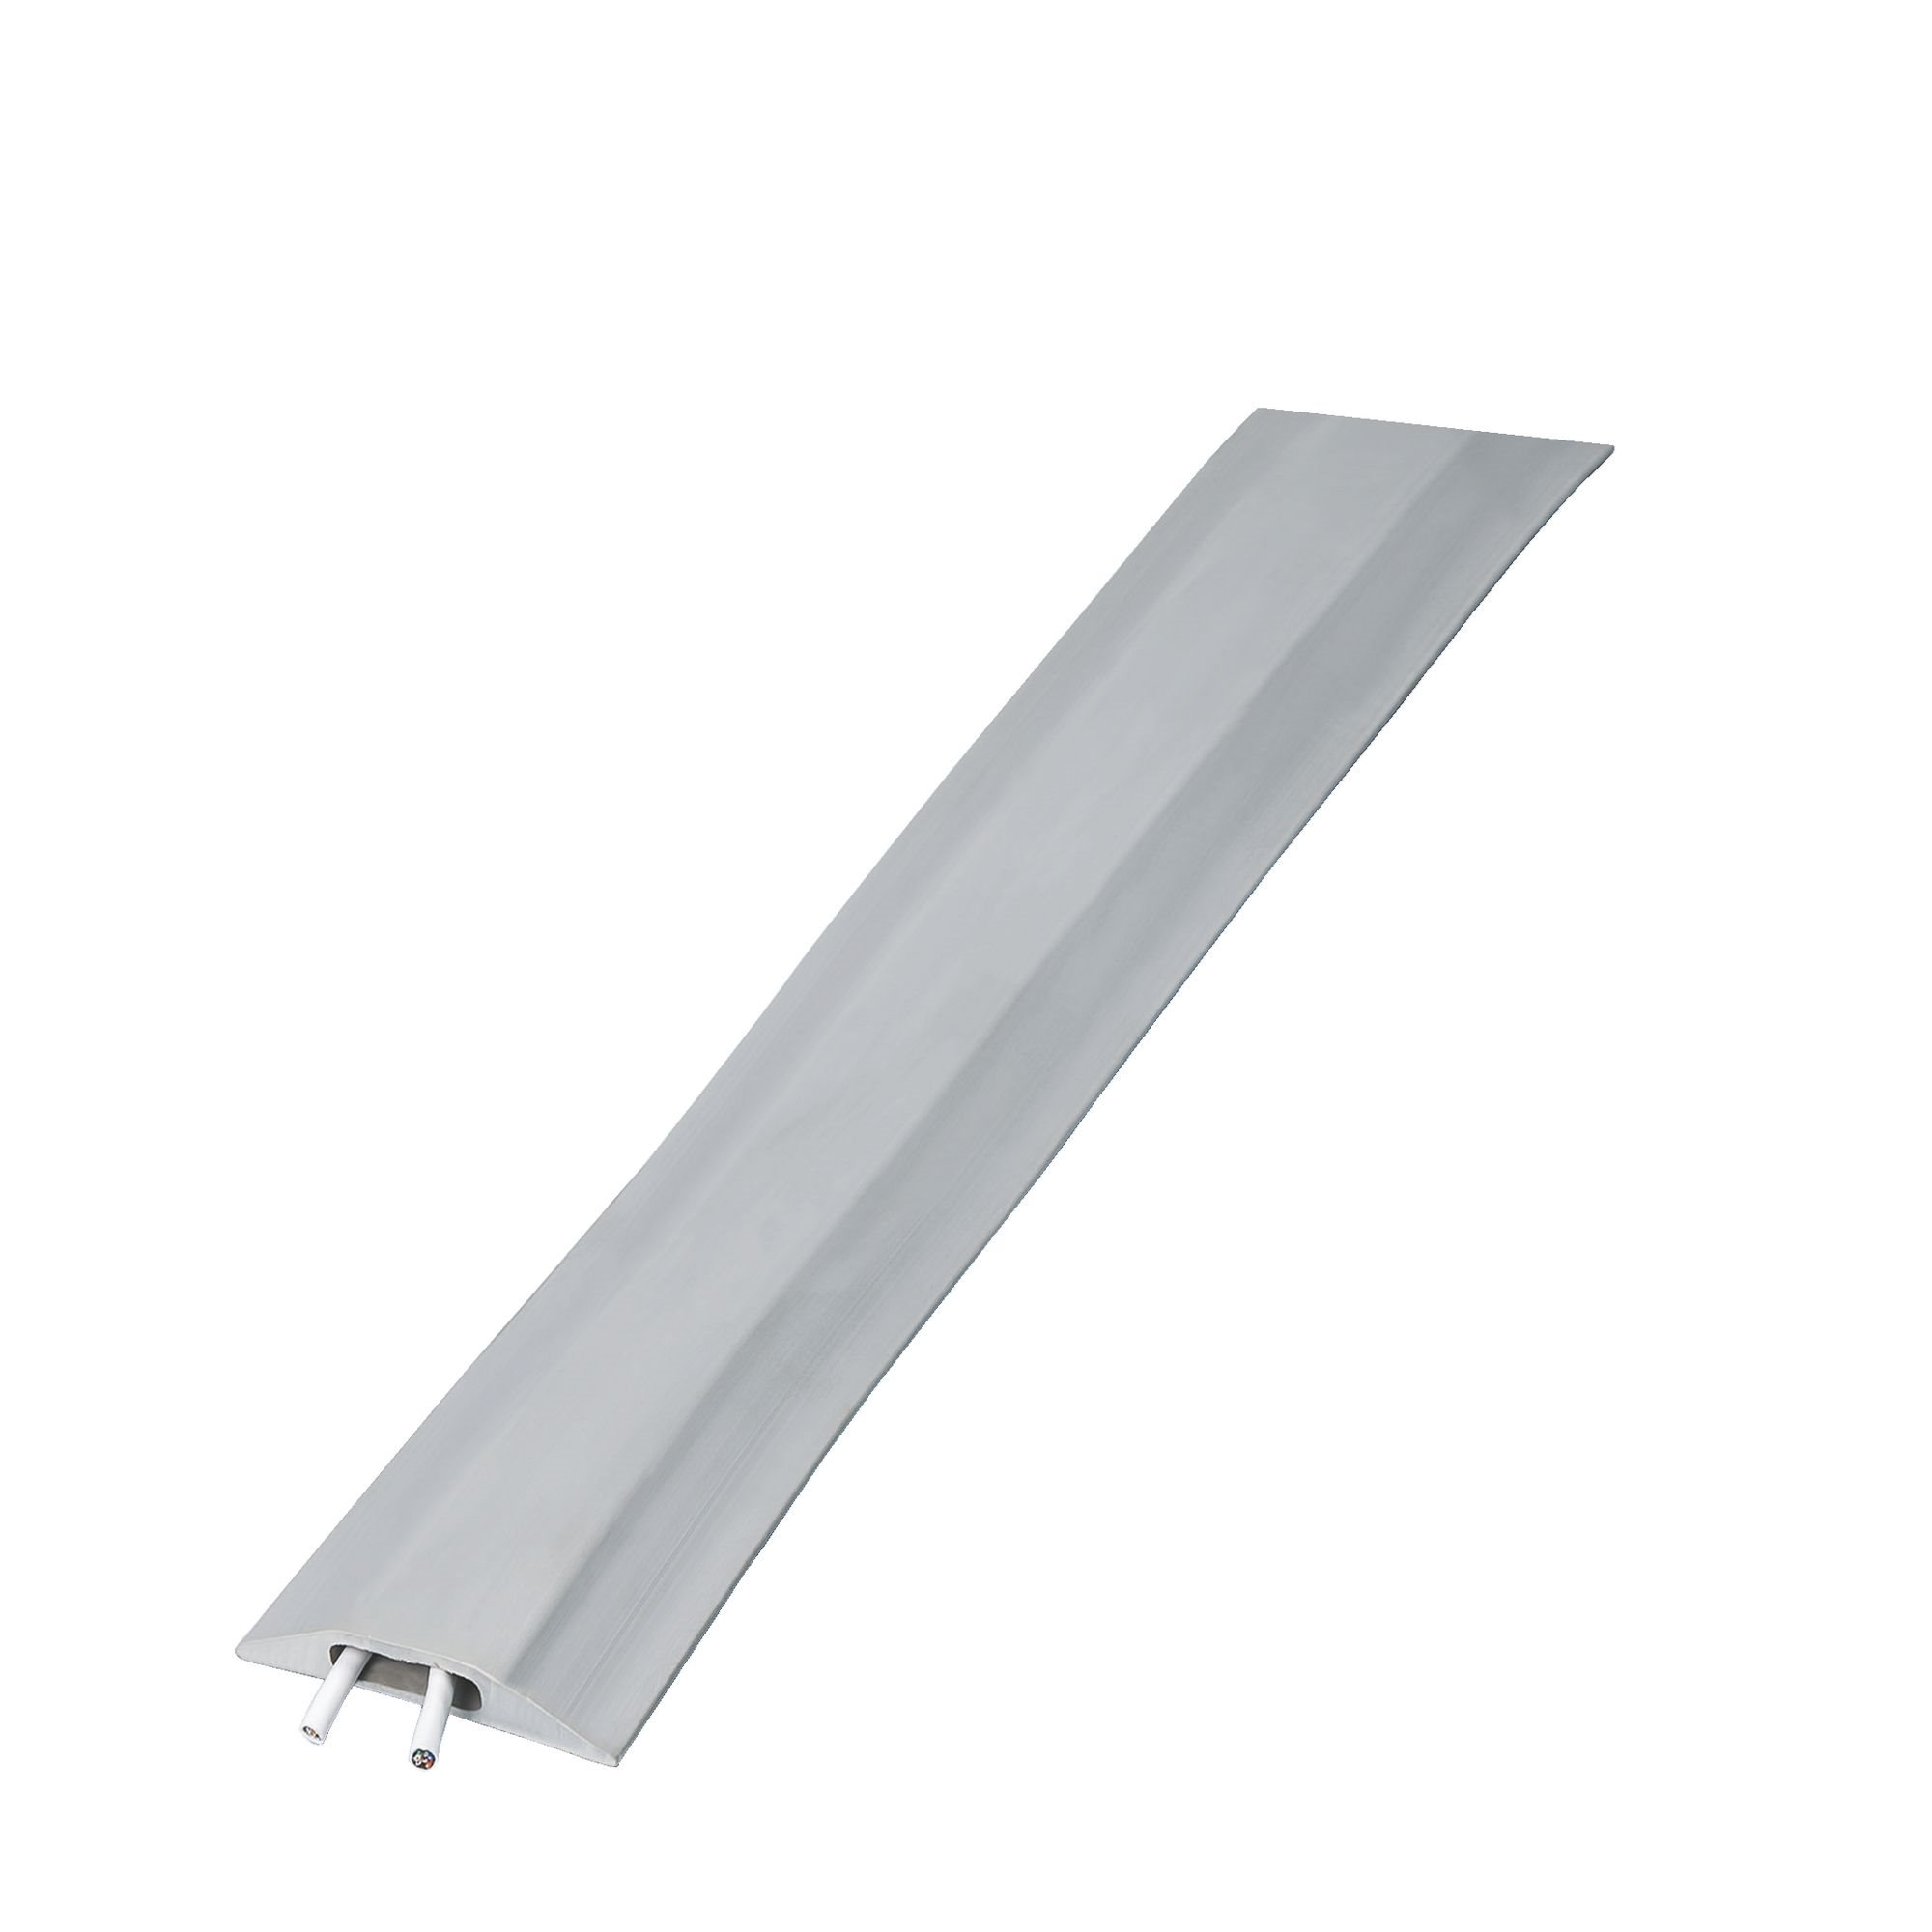 Extra large protection trough, 3 meters